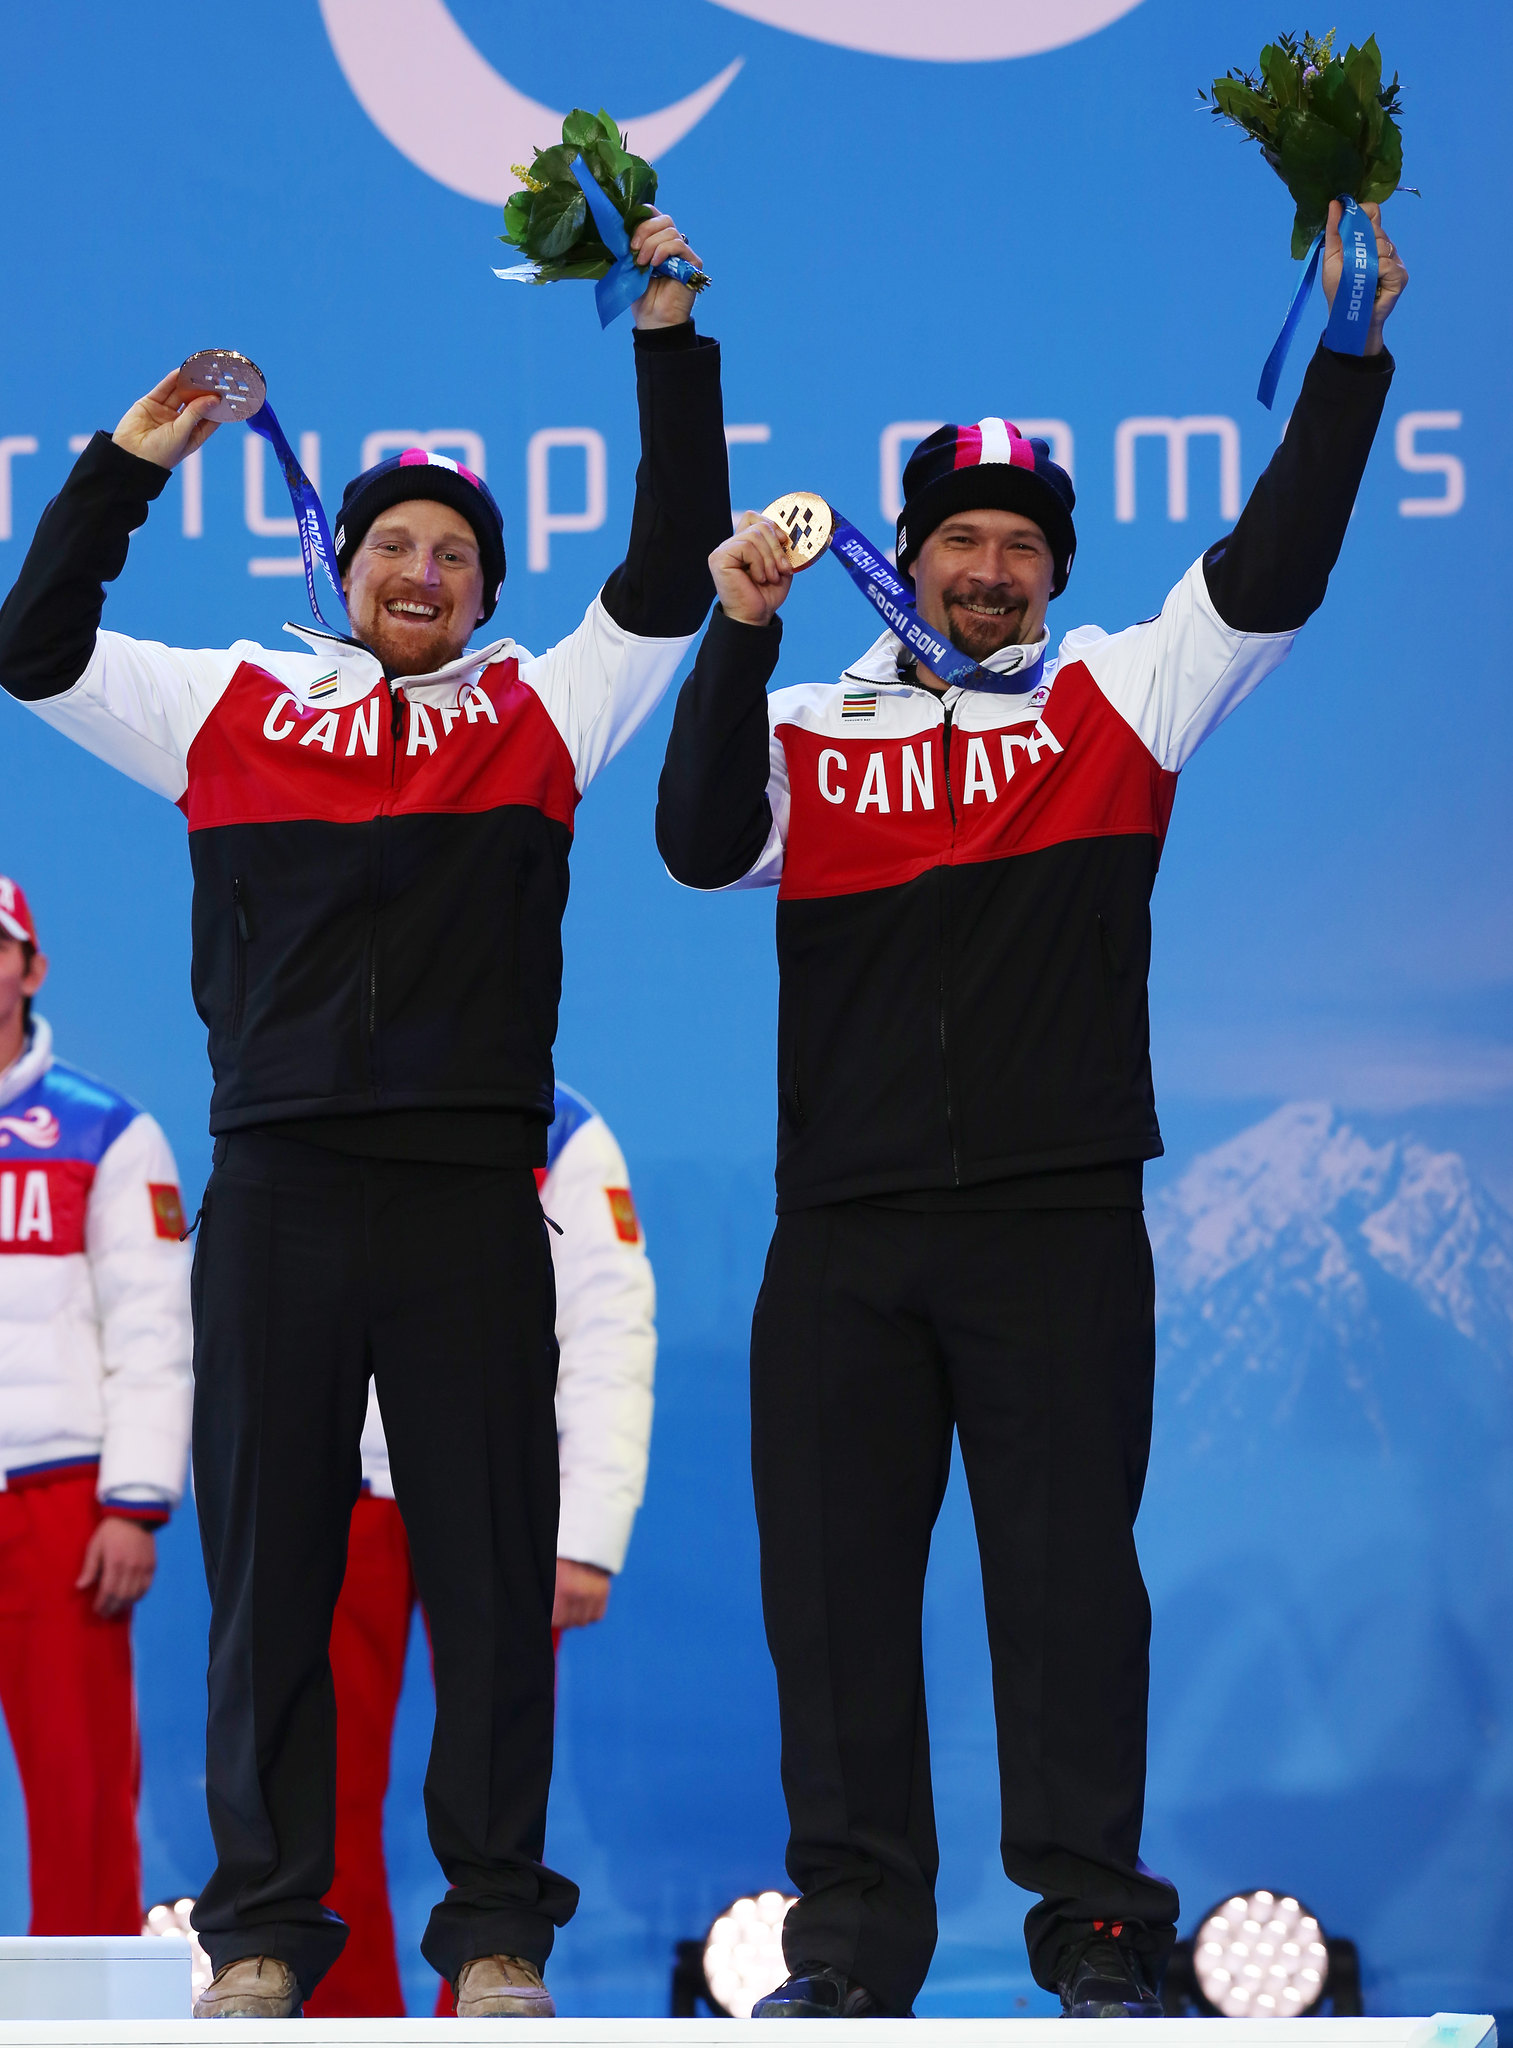 Williamson and Brush showoff their hardware in Sochi, RUS at the 2014 Paralympic Winter Games